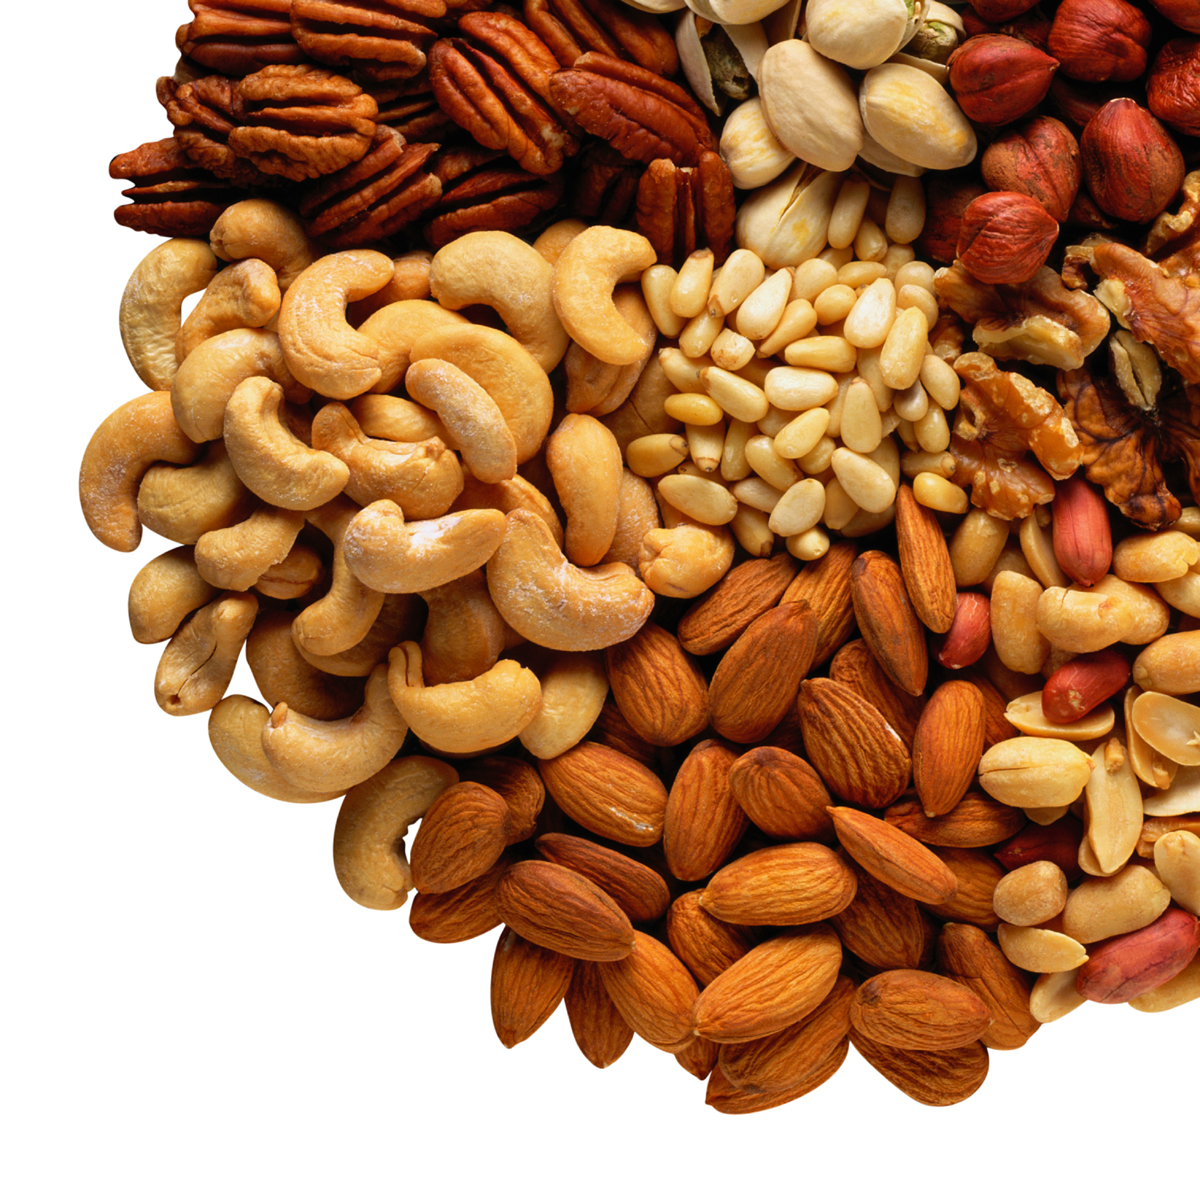 Peanut clipart mixed nuts Nuts Pie Nuts clipart Clipart